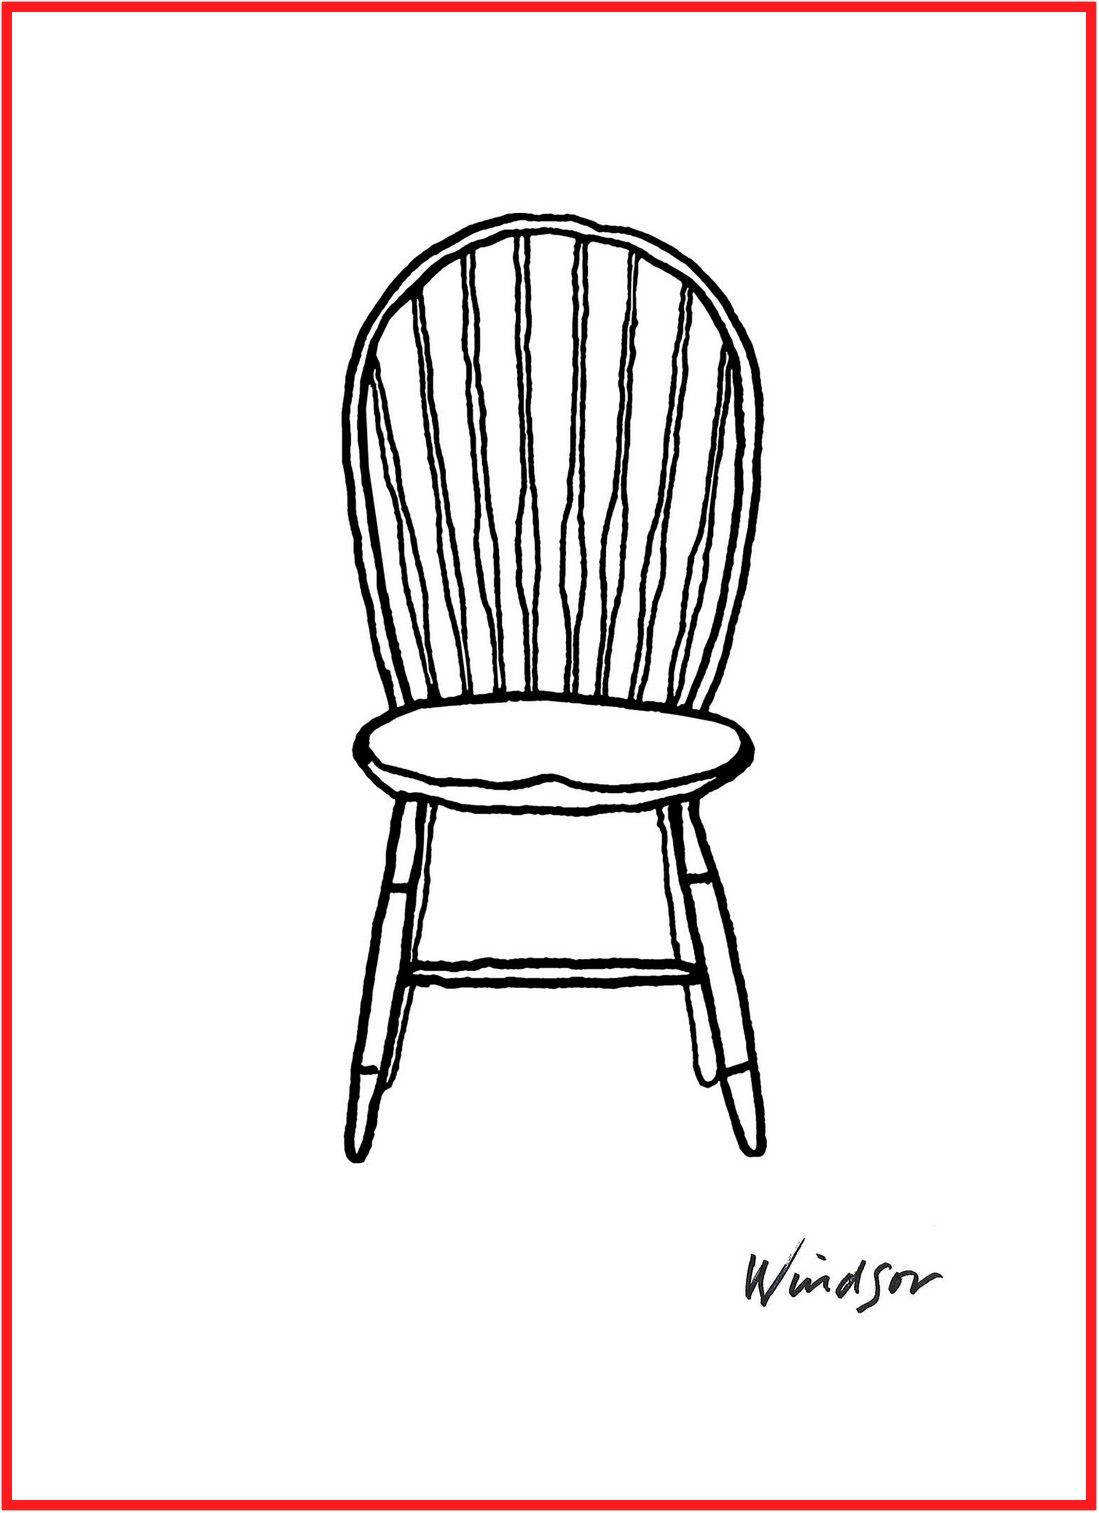 116 Reference Of Chair Drawing Cute In 2020 Chair Drawing Art Chair Retro Furniture